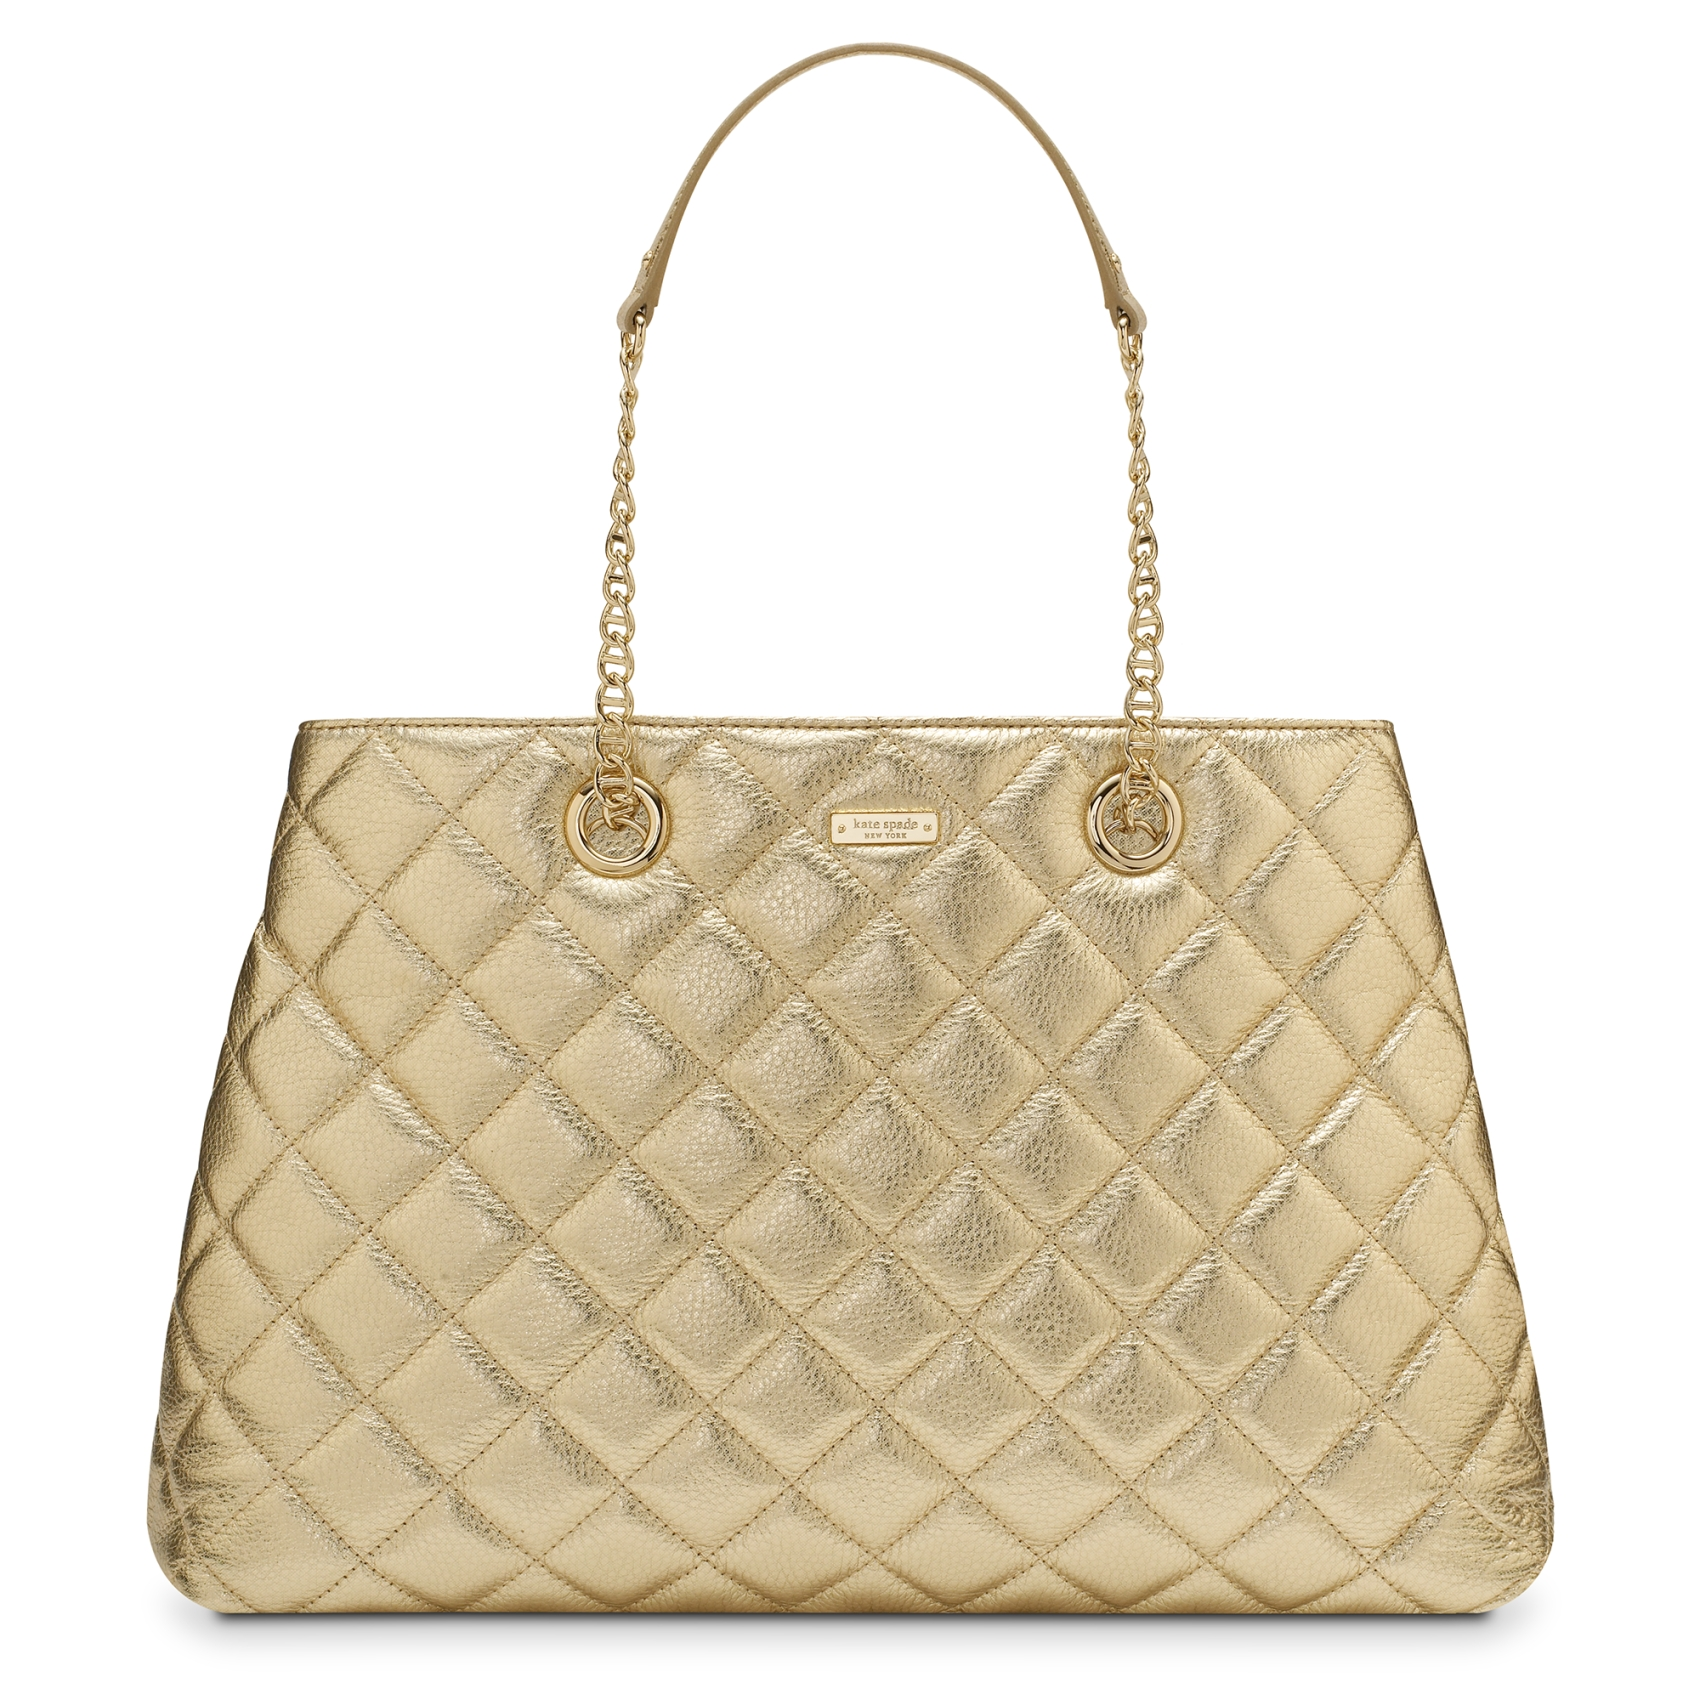 Sold Out!  BNWT Kate Spade Gold Coast Maryanne Tote Bag in Gold ... c783de271e48a